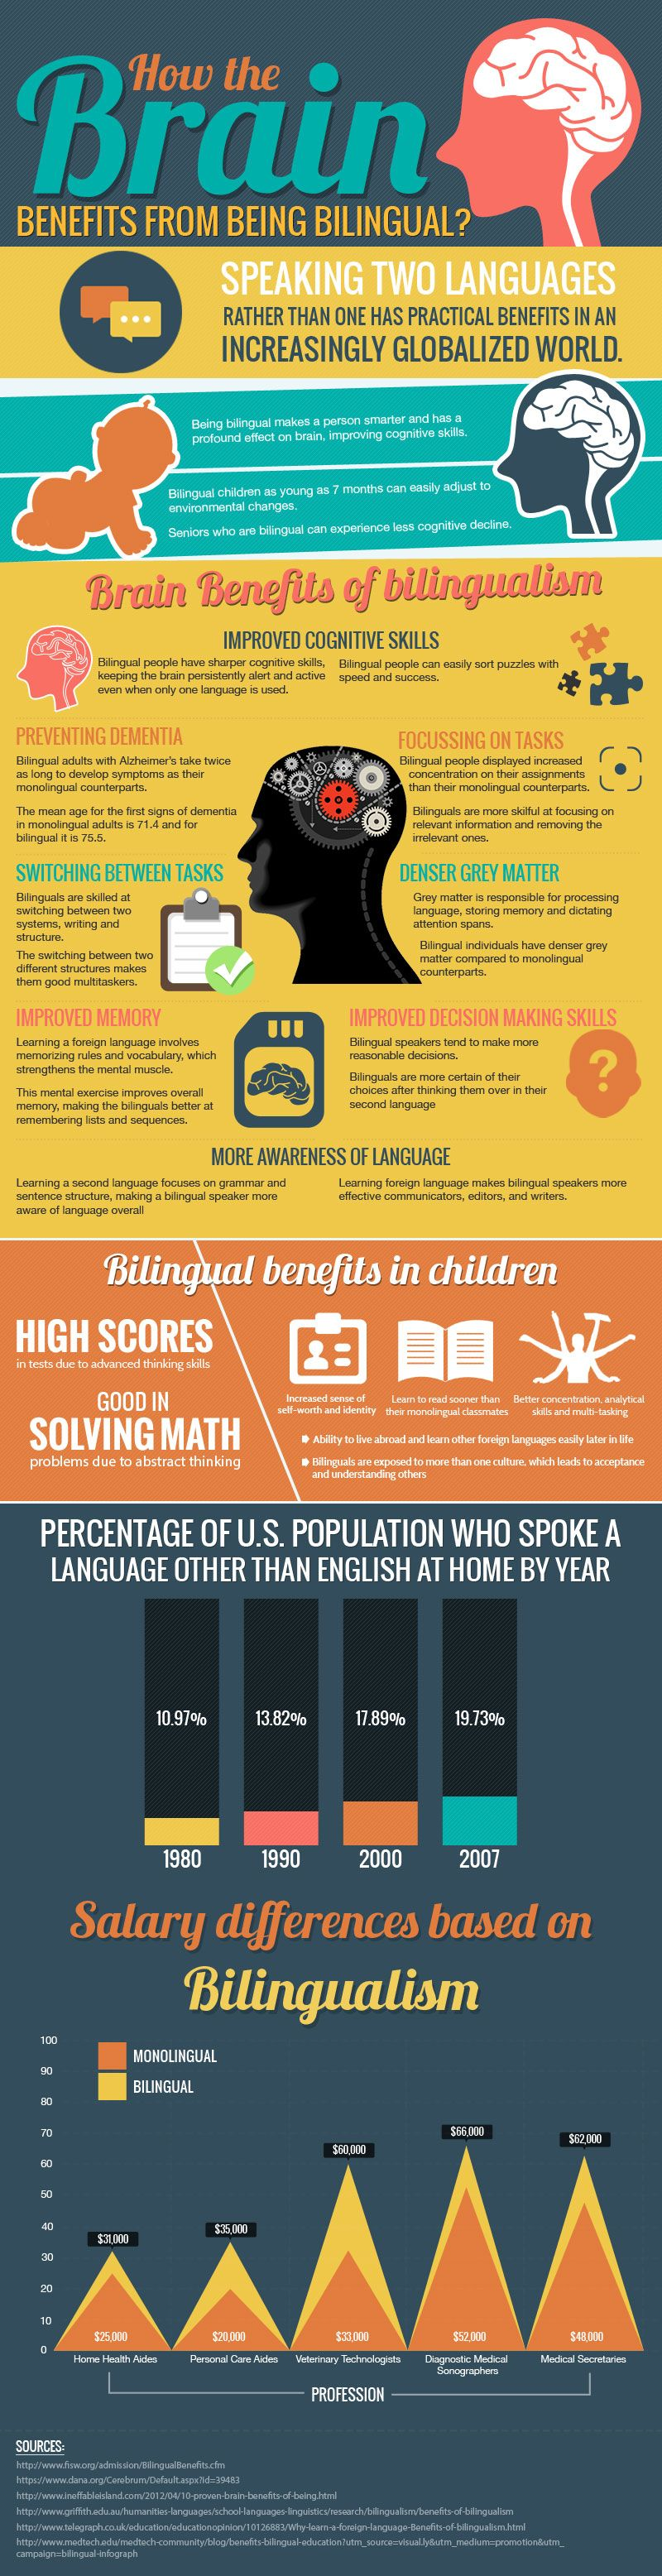 How-the-brain-benefits-from-being-bilingual